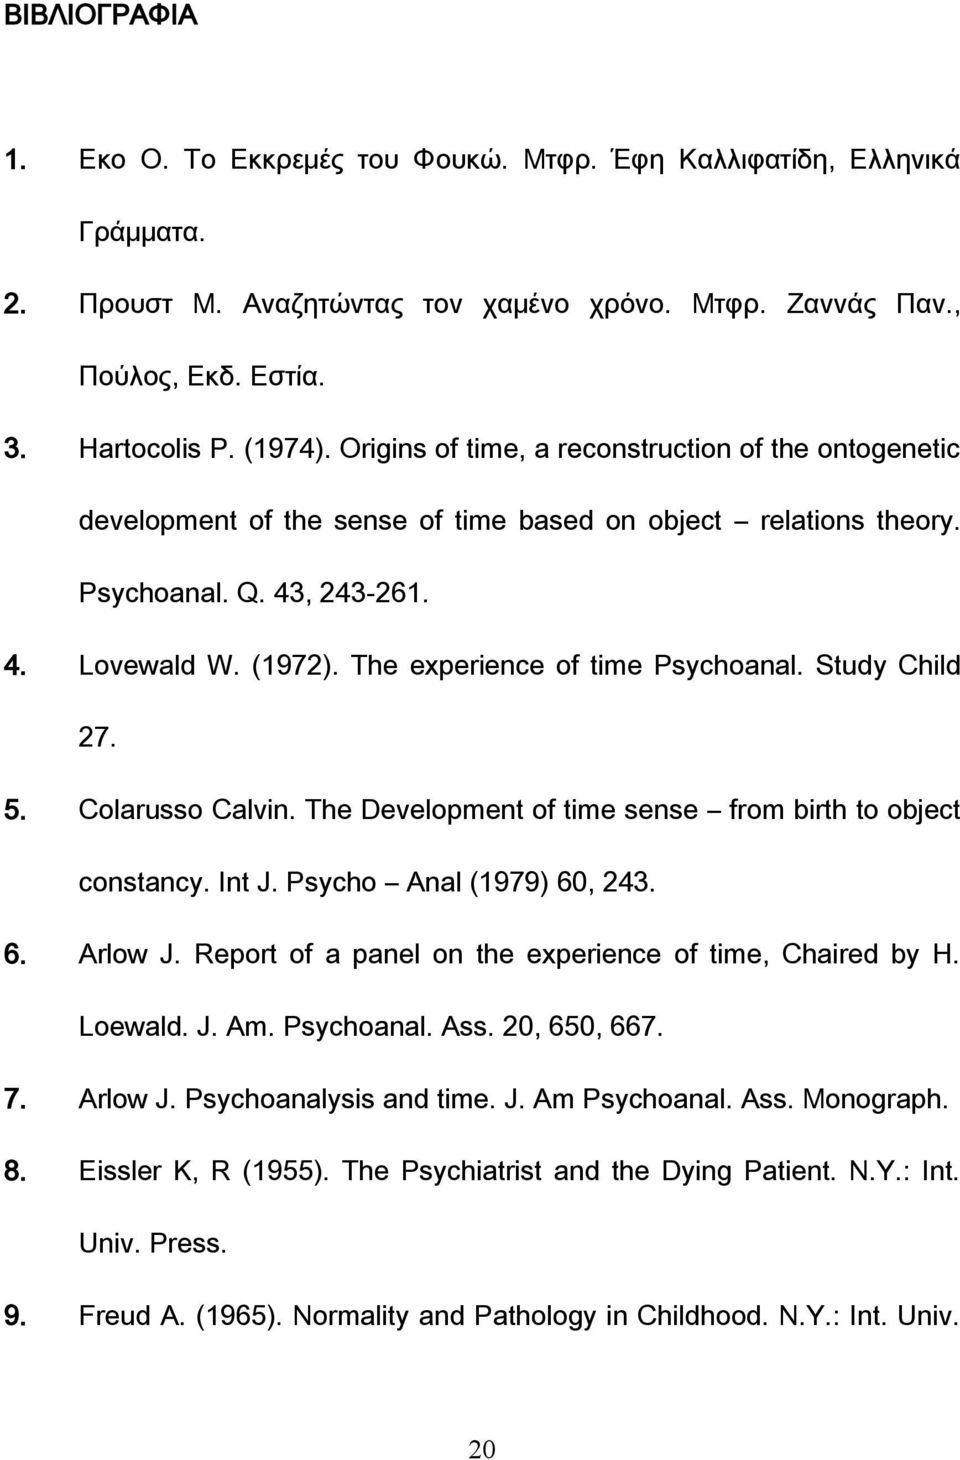 The experience of time Psychoanal. Study Child 27. 5. Colarusso Calvin. The Development of time sense from birth to object constancy. Int J. Psycho Anal (1979) 60, 243. 6. Arlow J.